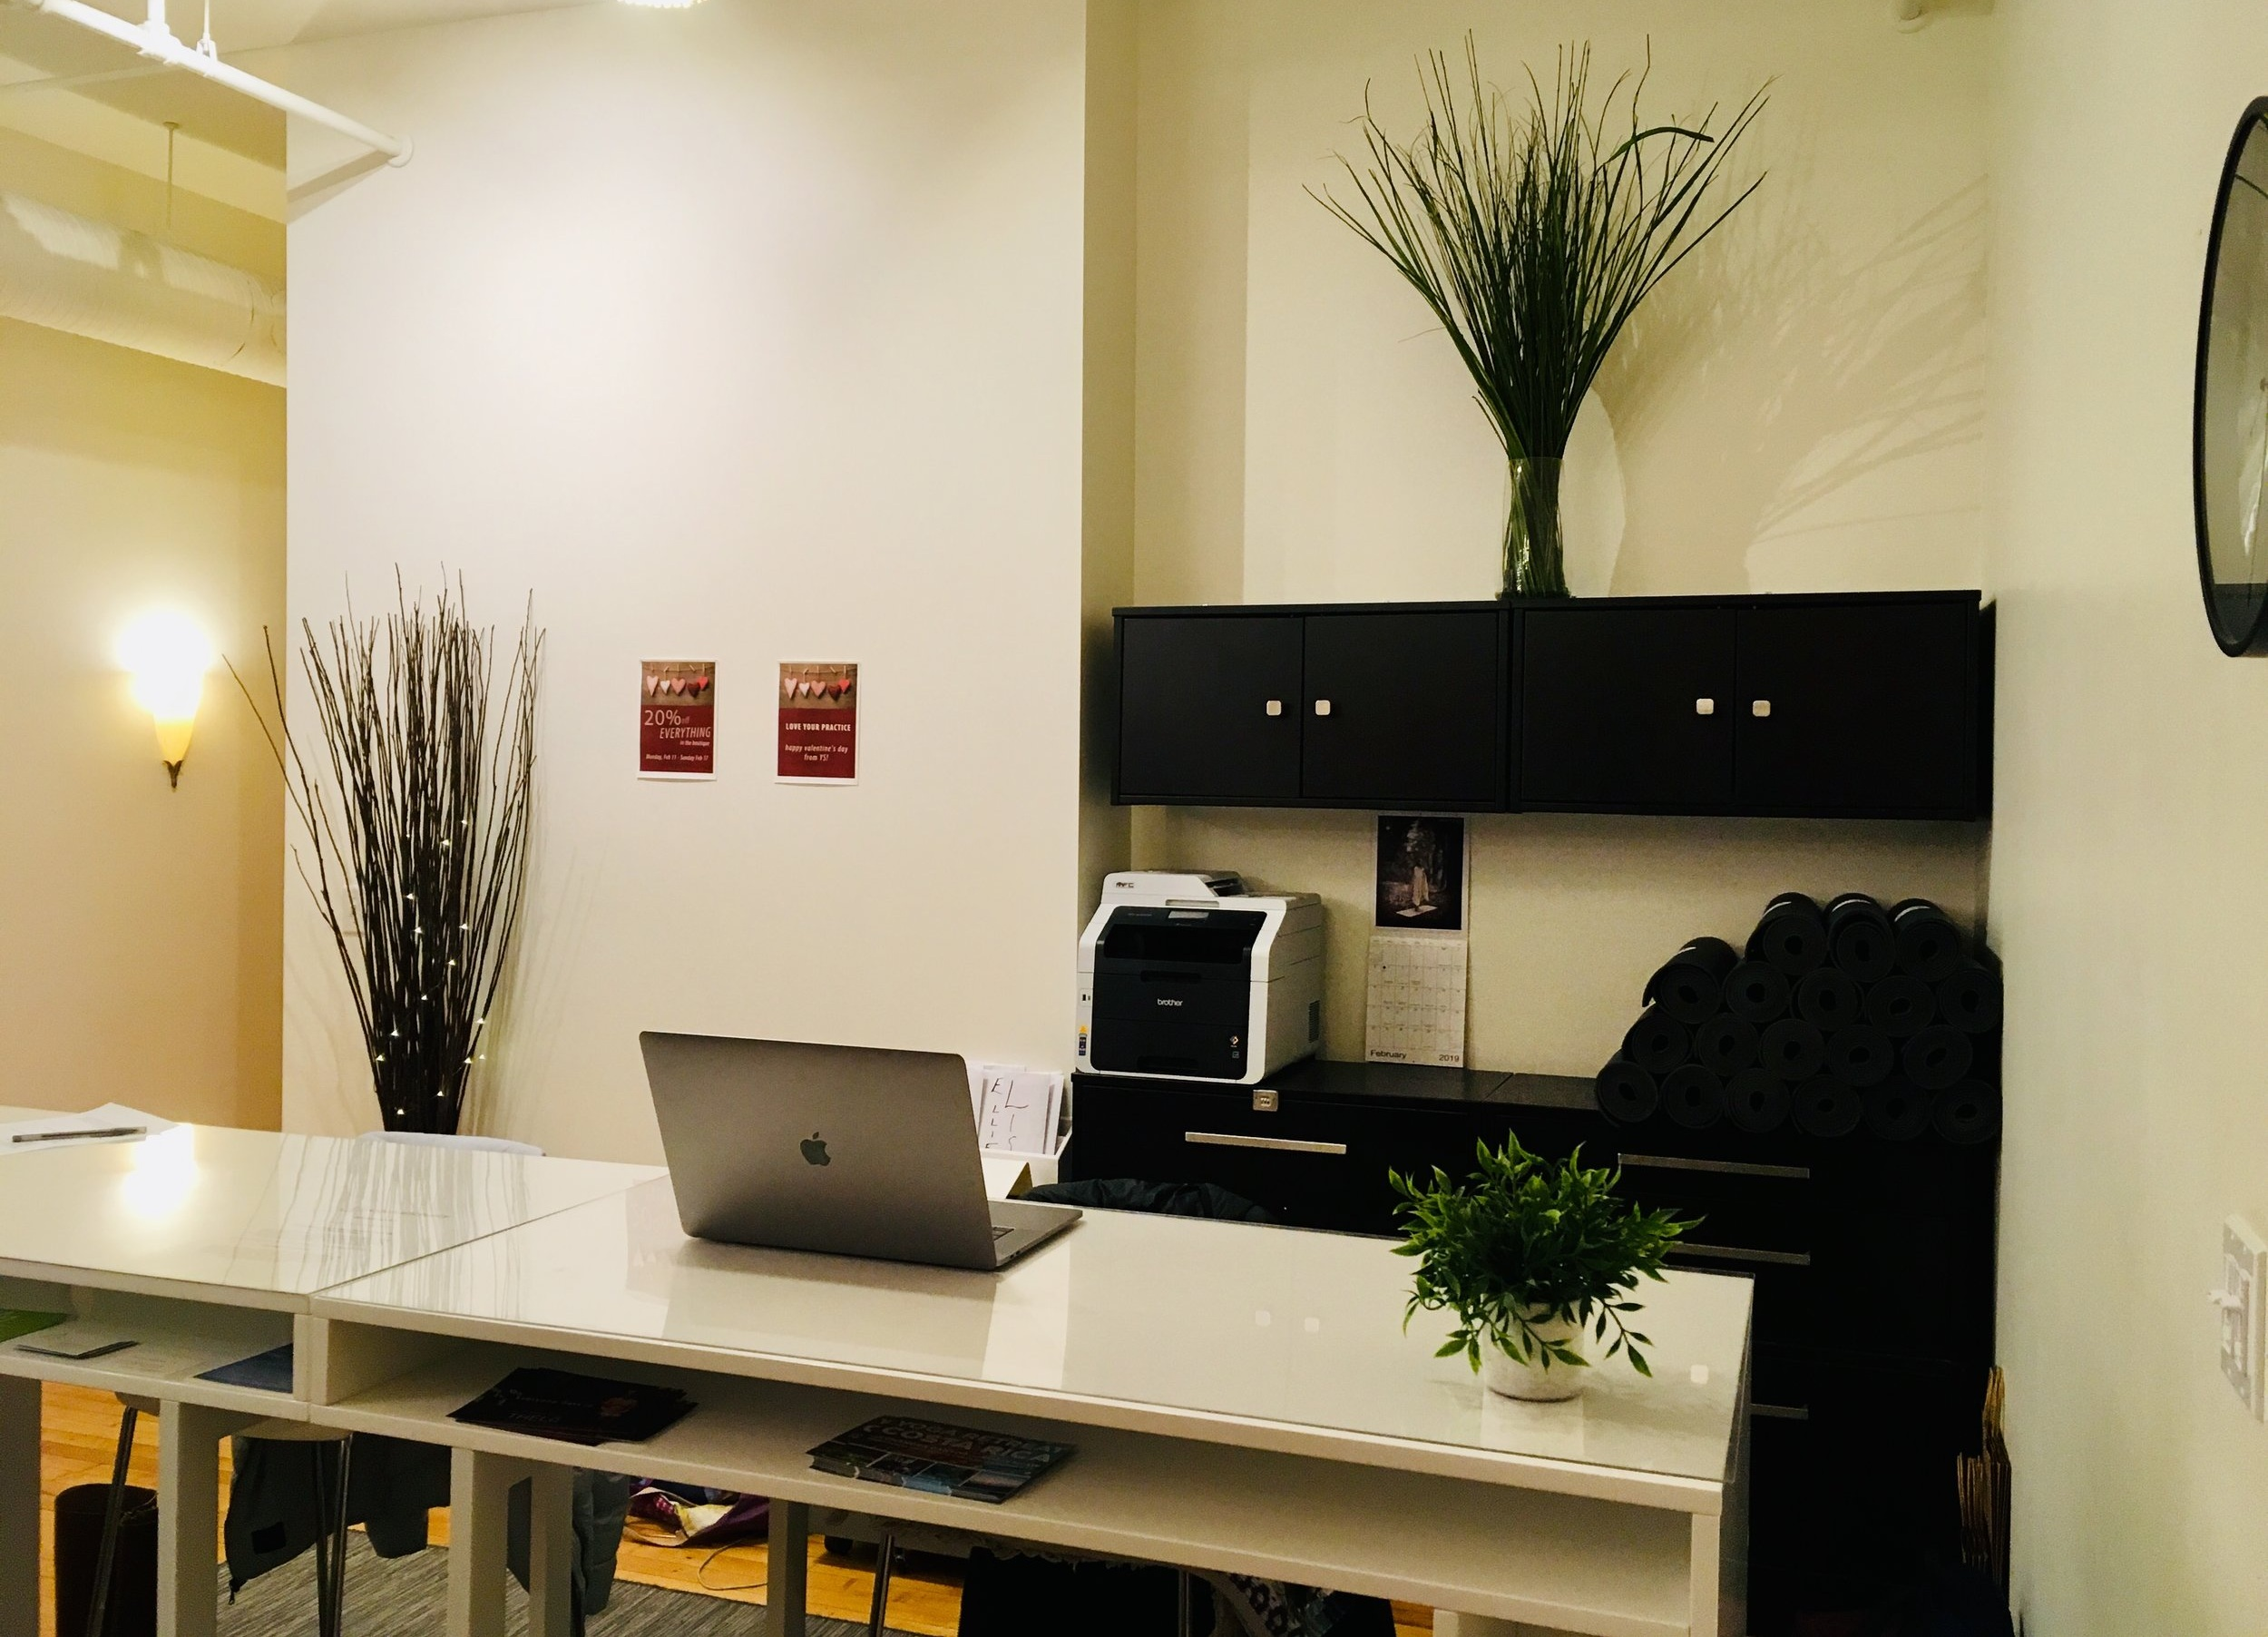 see the neatly rolled rental mats behind the desk? coming soon!